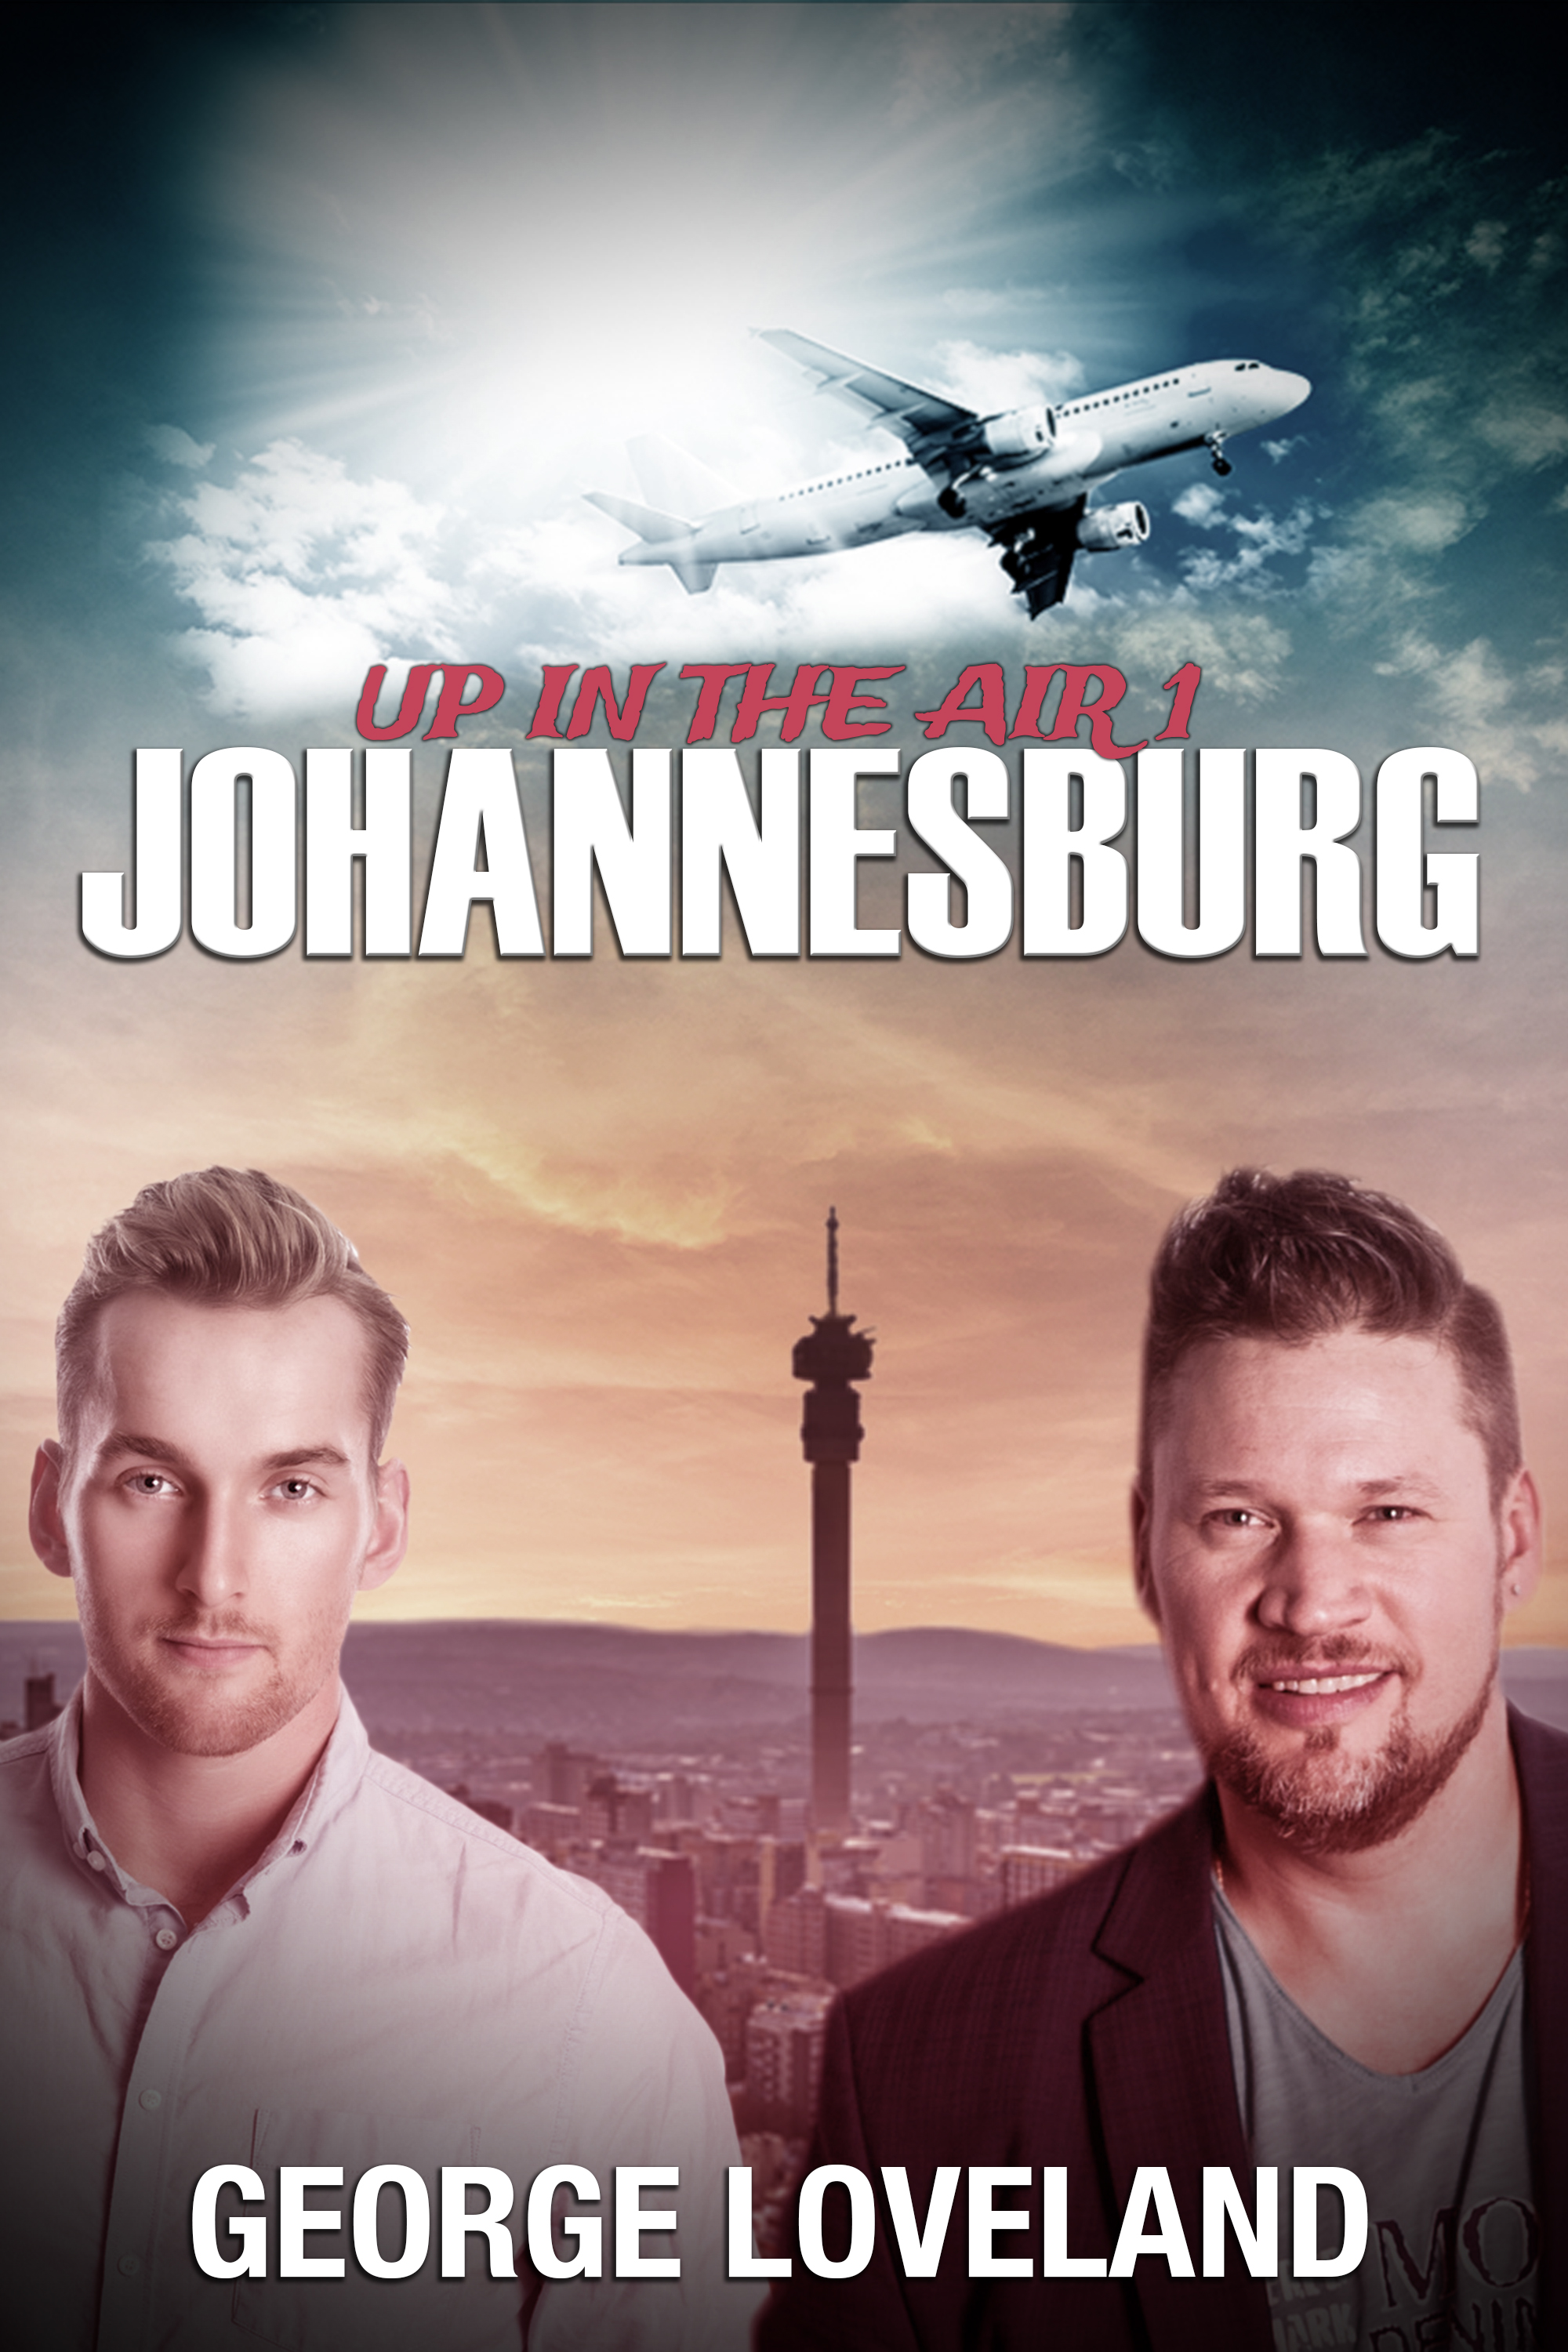 Up in the Air 1: Johannesburg